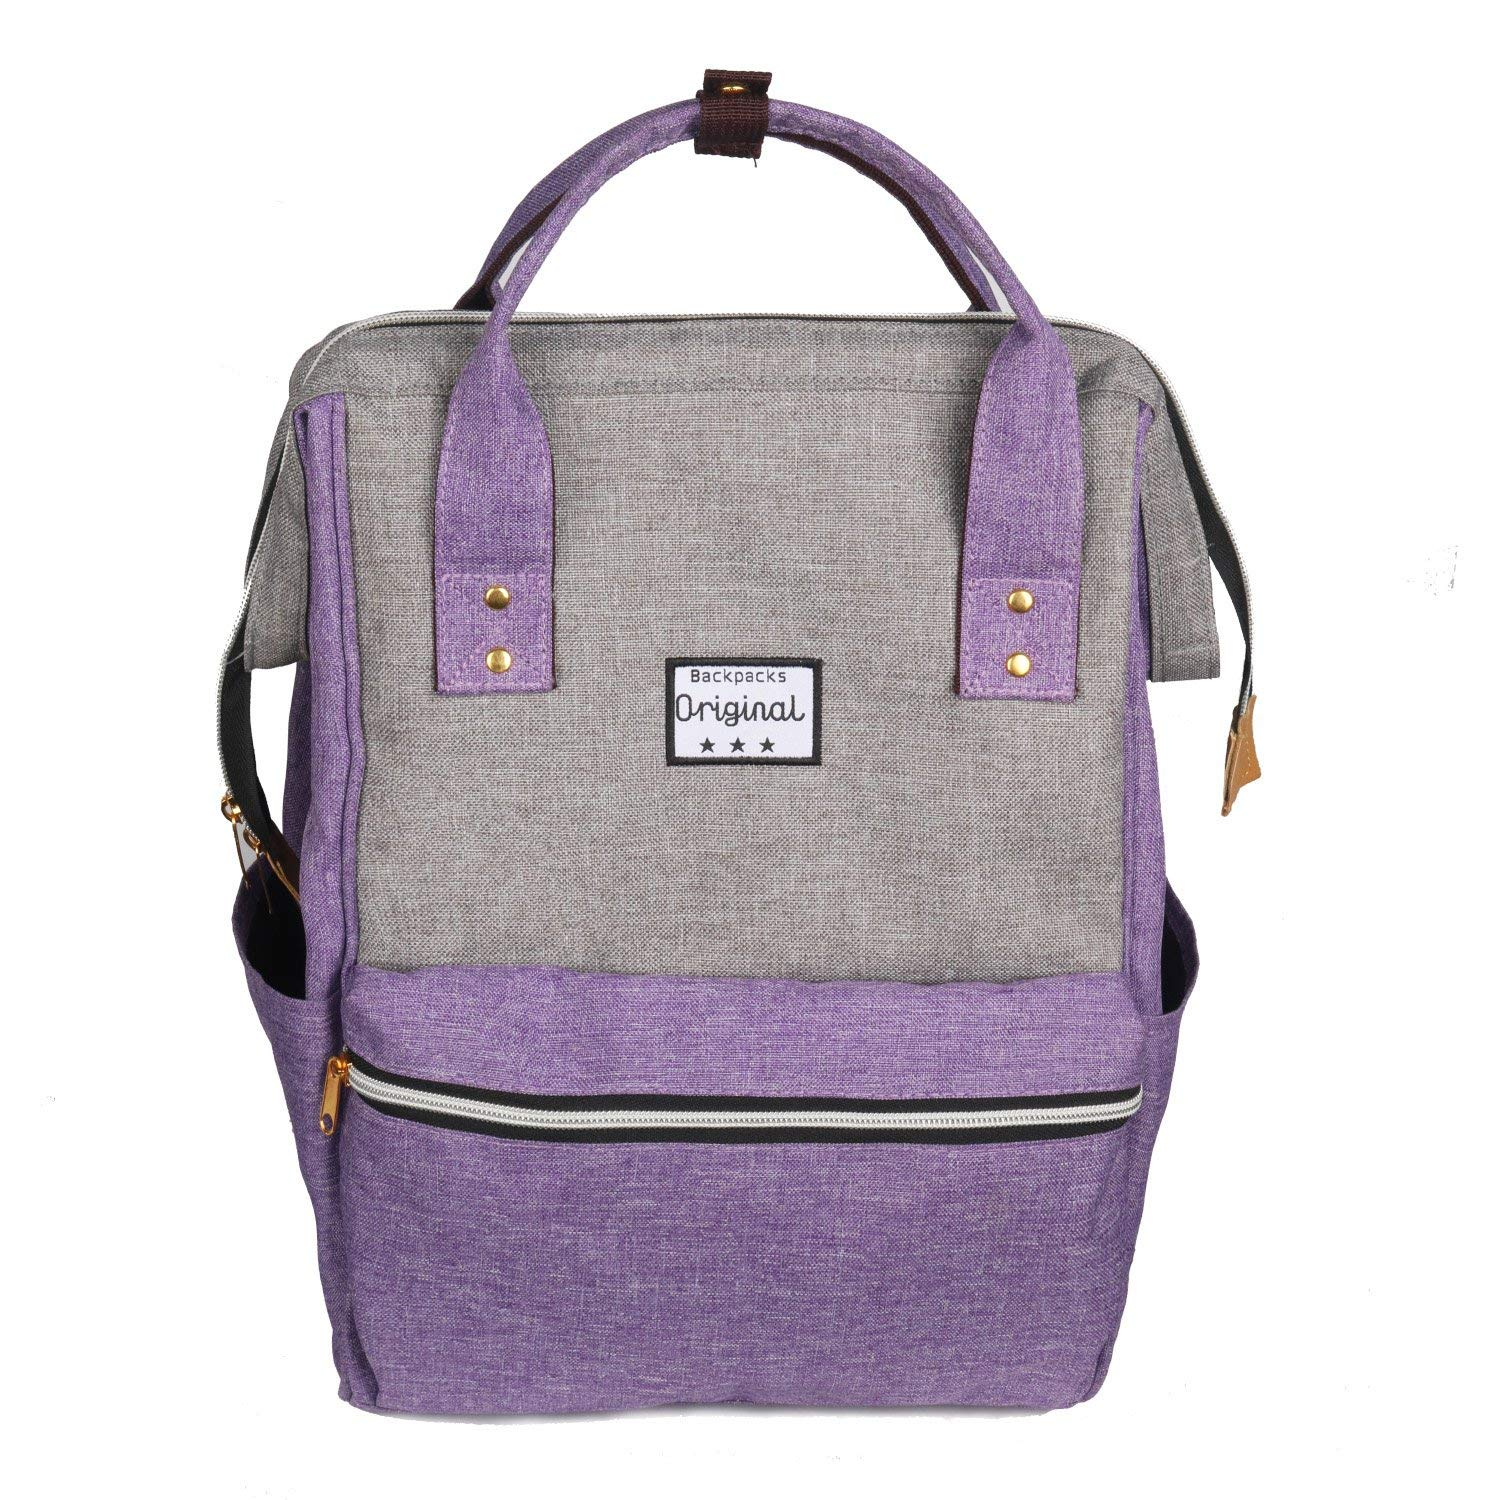 Cheap Tote Bags For School College Find Tote Bags For School